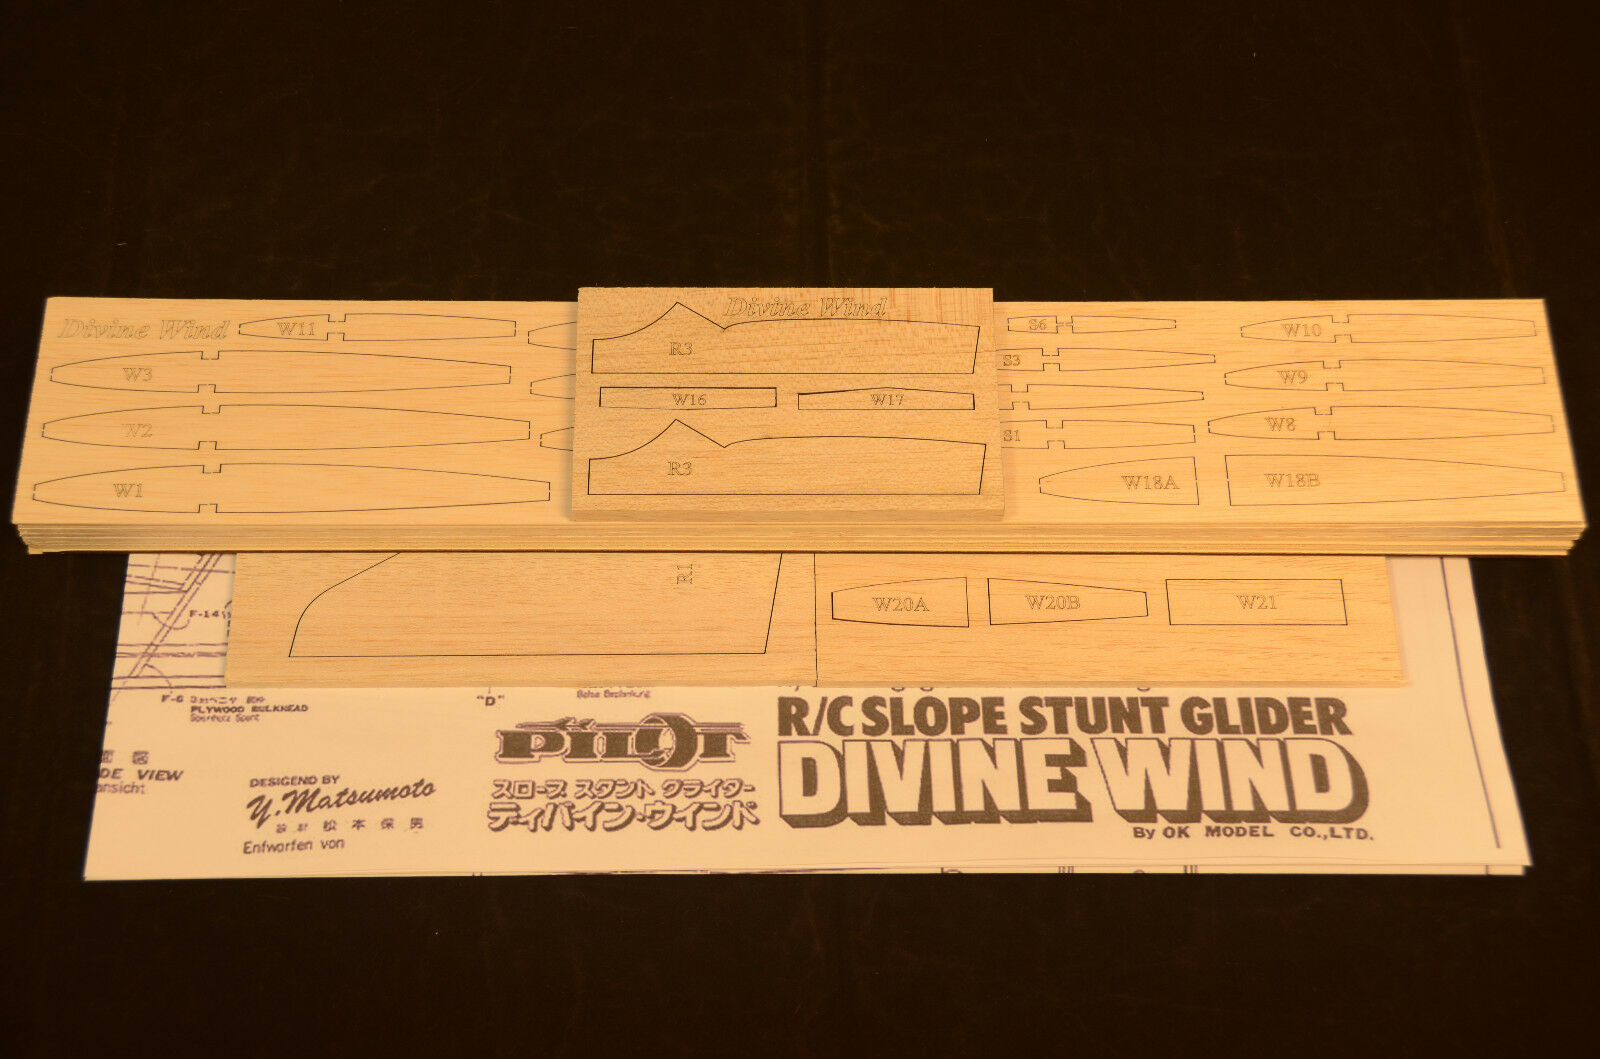 Pendiente Planeador Divine Wind Corte Láser Kit & Planes 65 Ala Span,Please Read